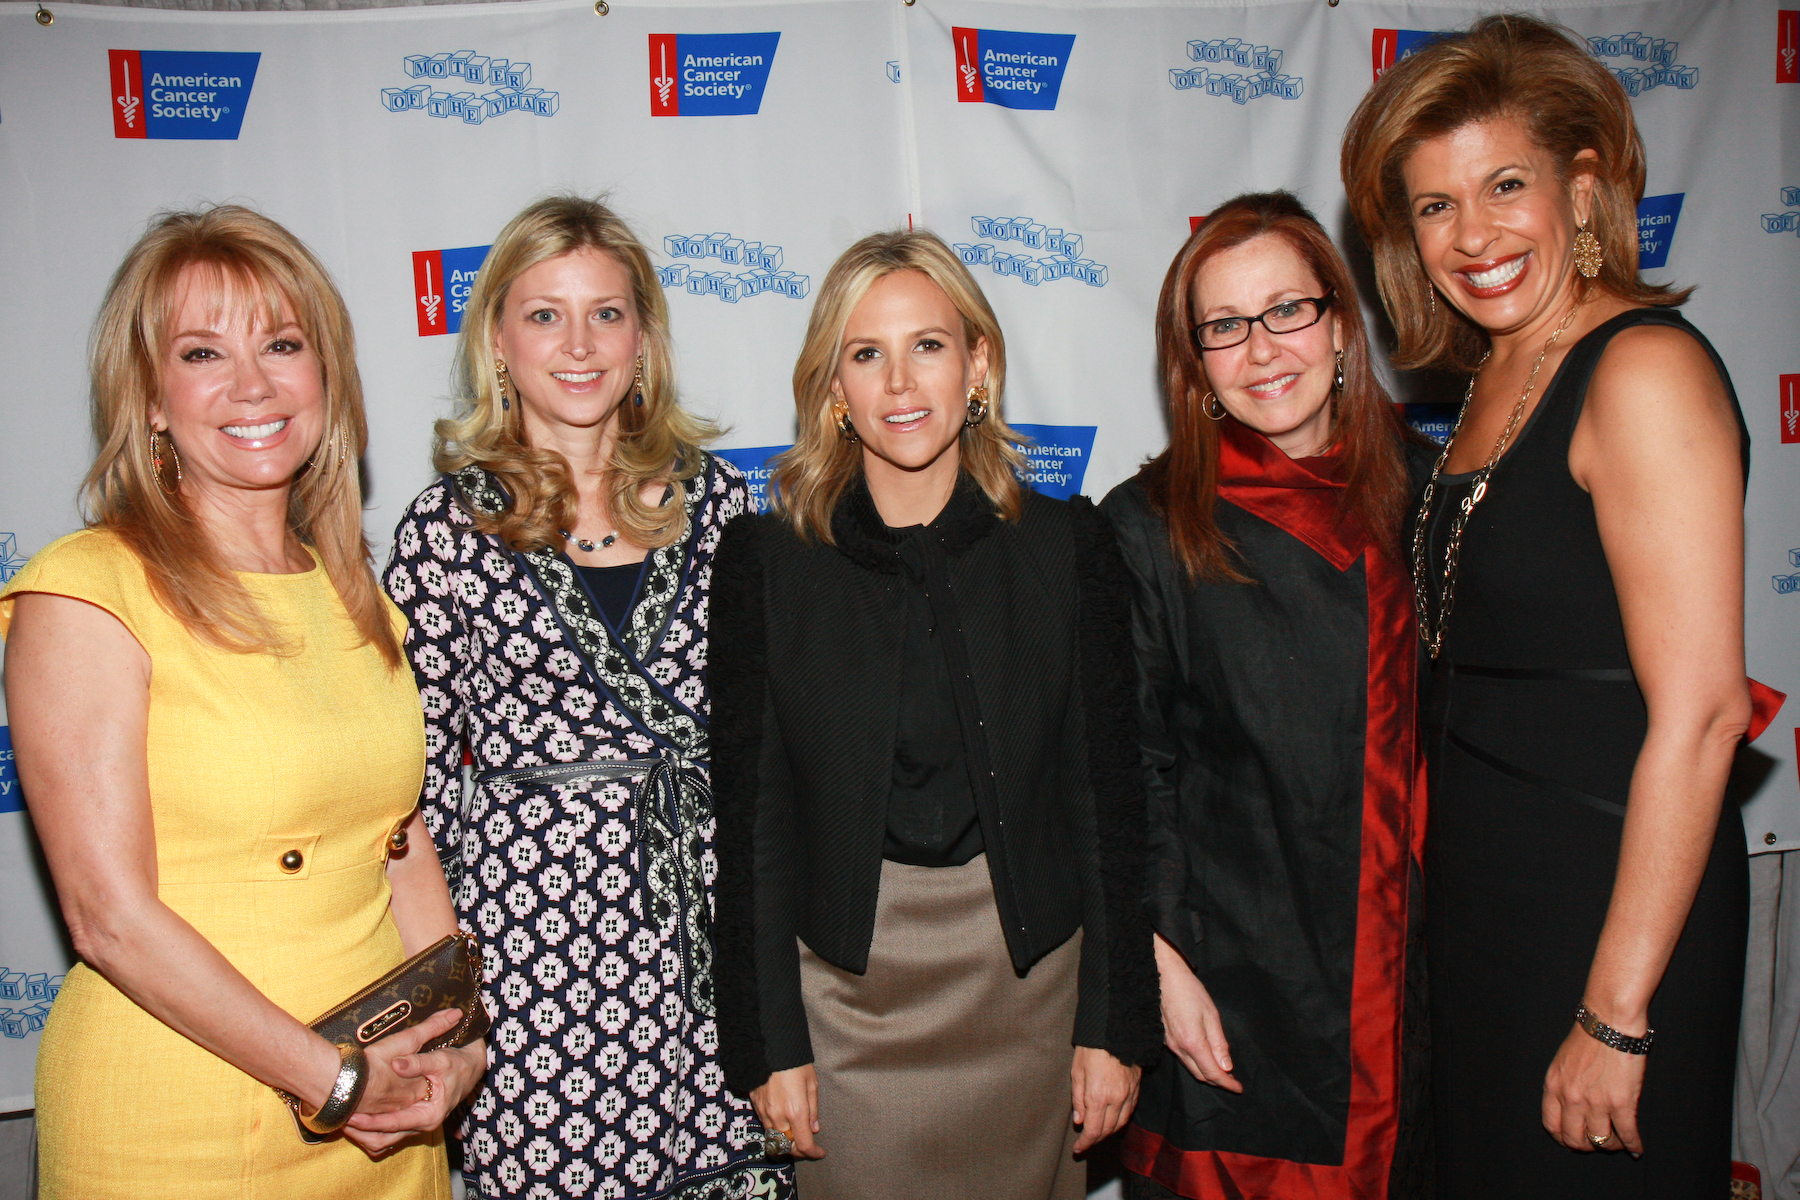 American Cancer Society Honors Tory Burch at Mother of the Year Luncheon